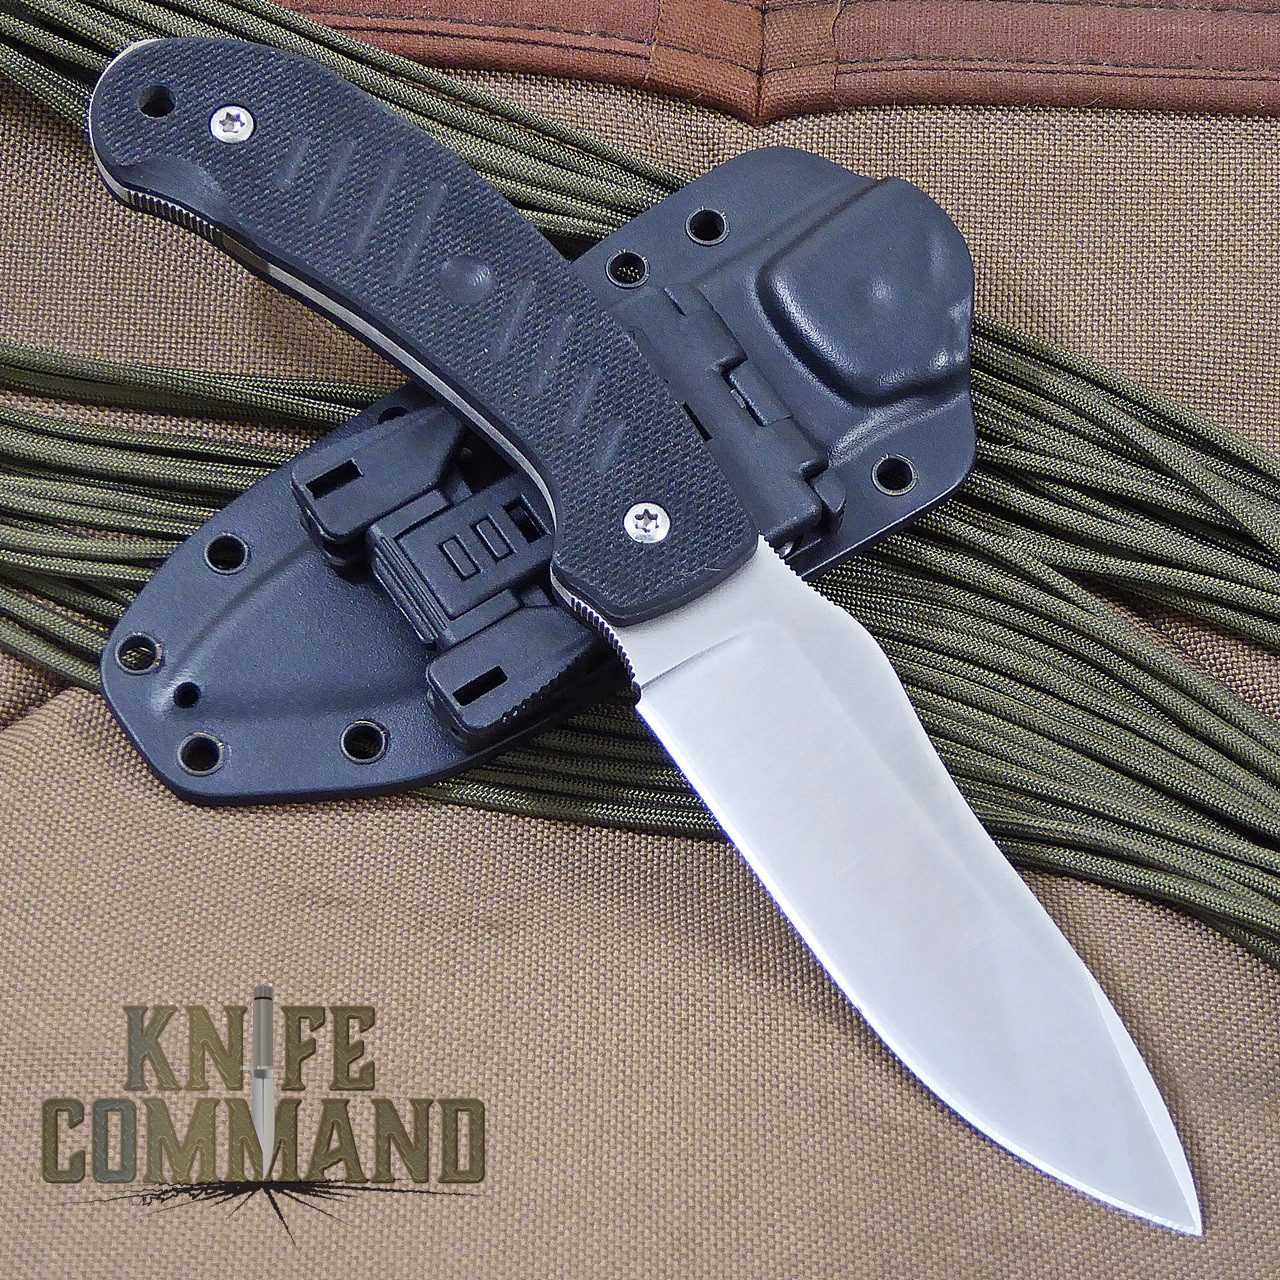 Blade Tech N'yati Fixed Blade.  A superior fixed blade for outdoors or duty applications.